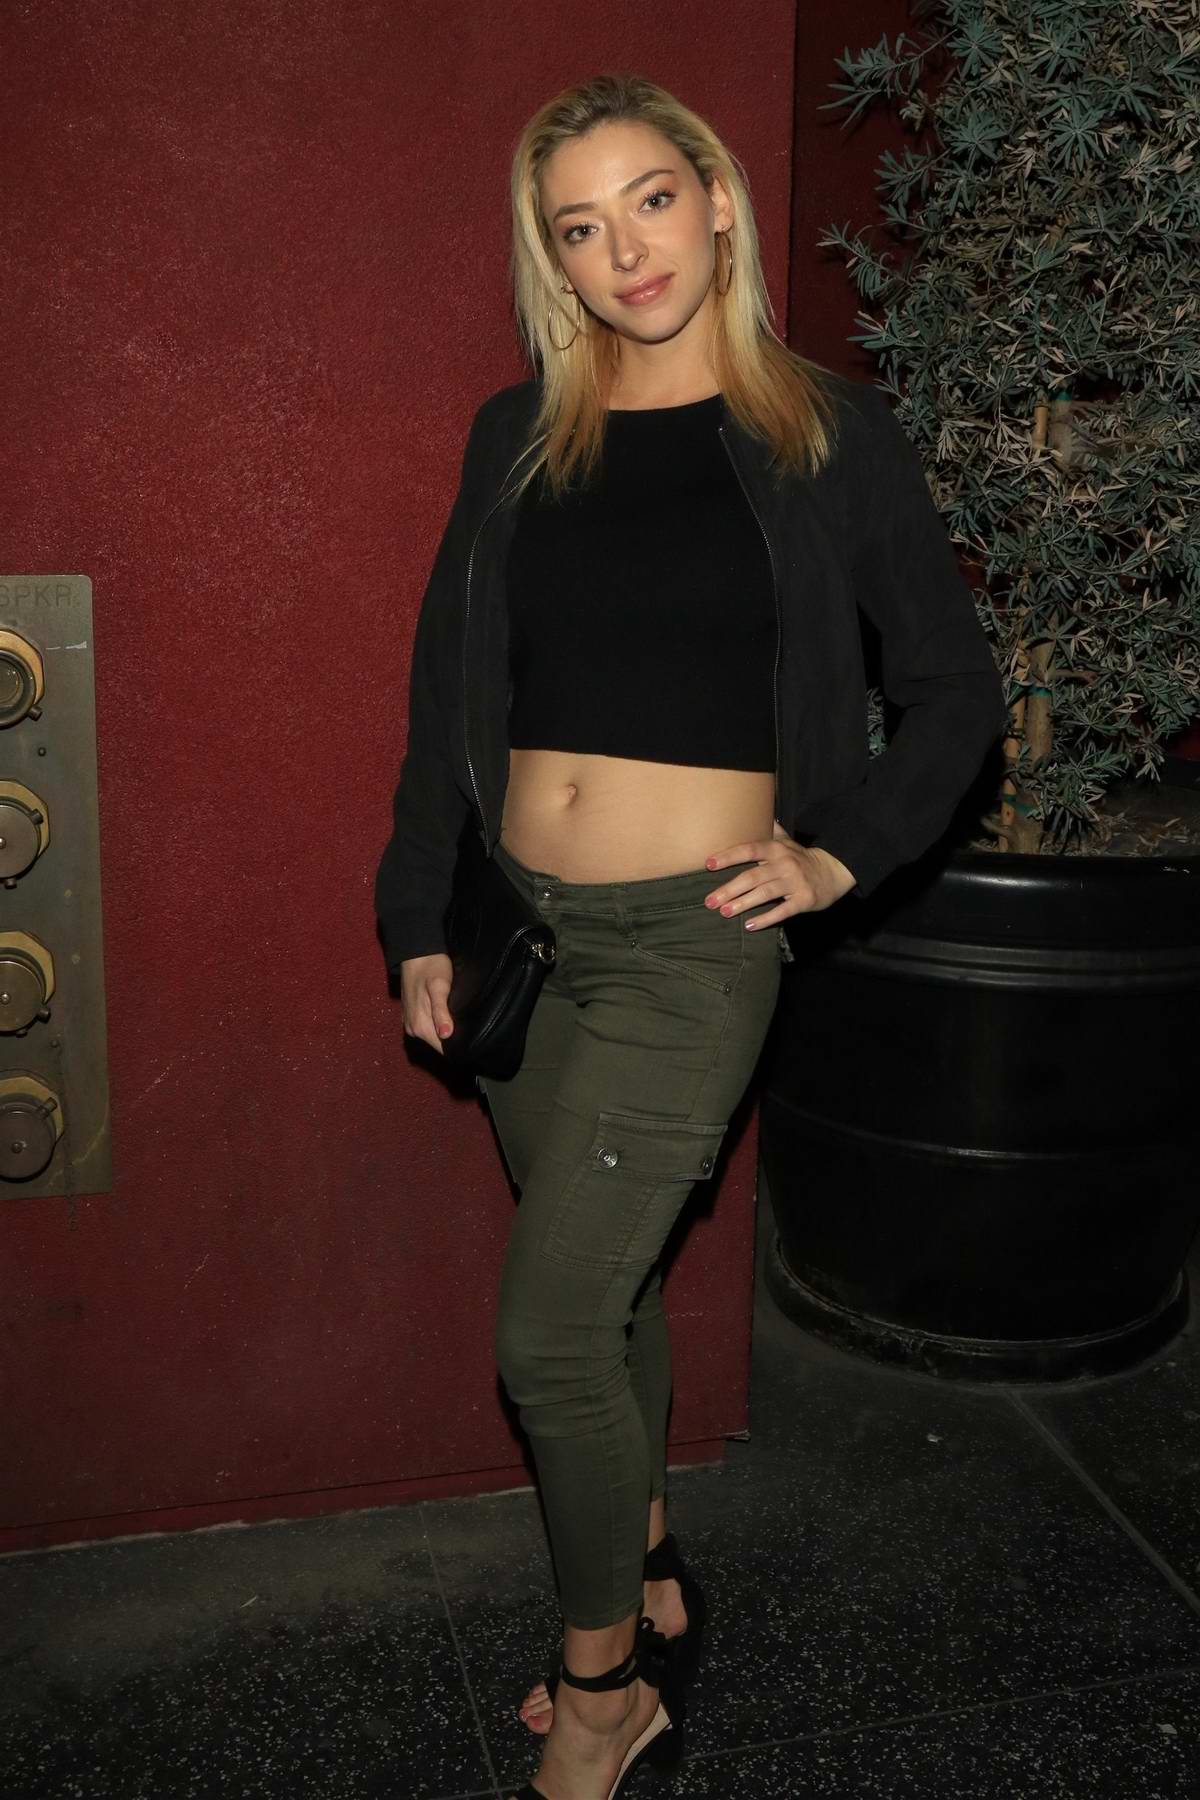 Liz Nolan poses for the cameras outside the Bardot nightclub in Hollywood, Los Angeles